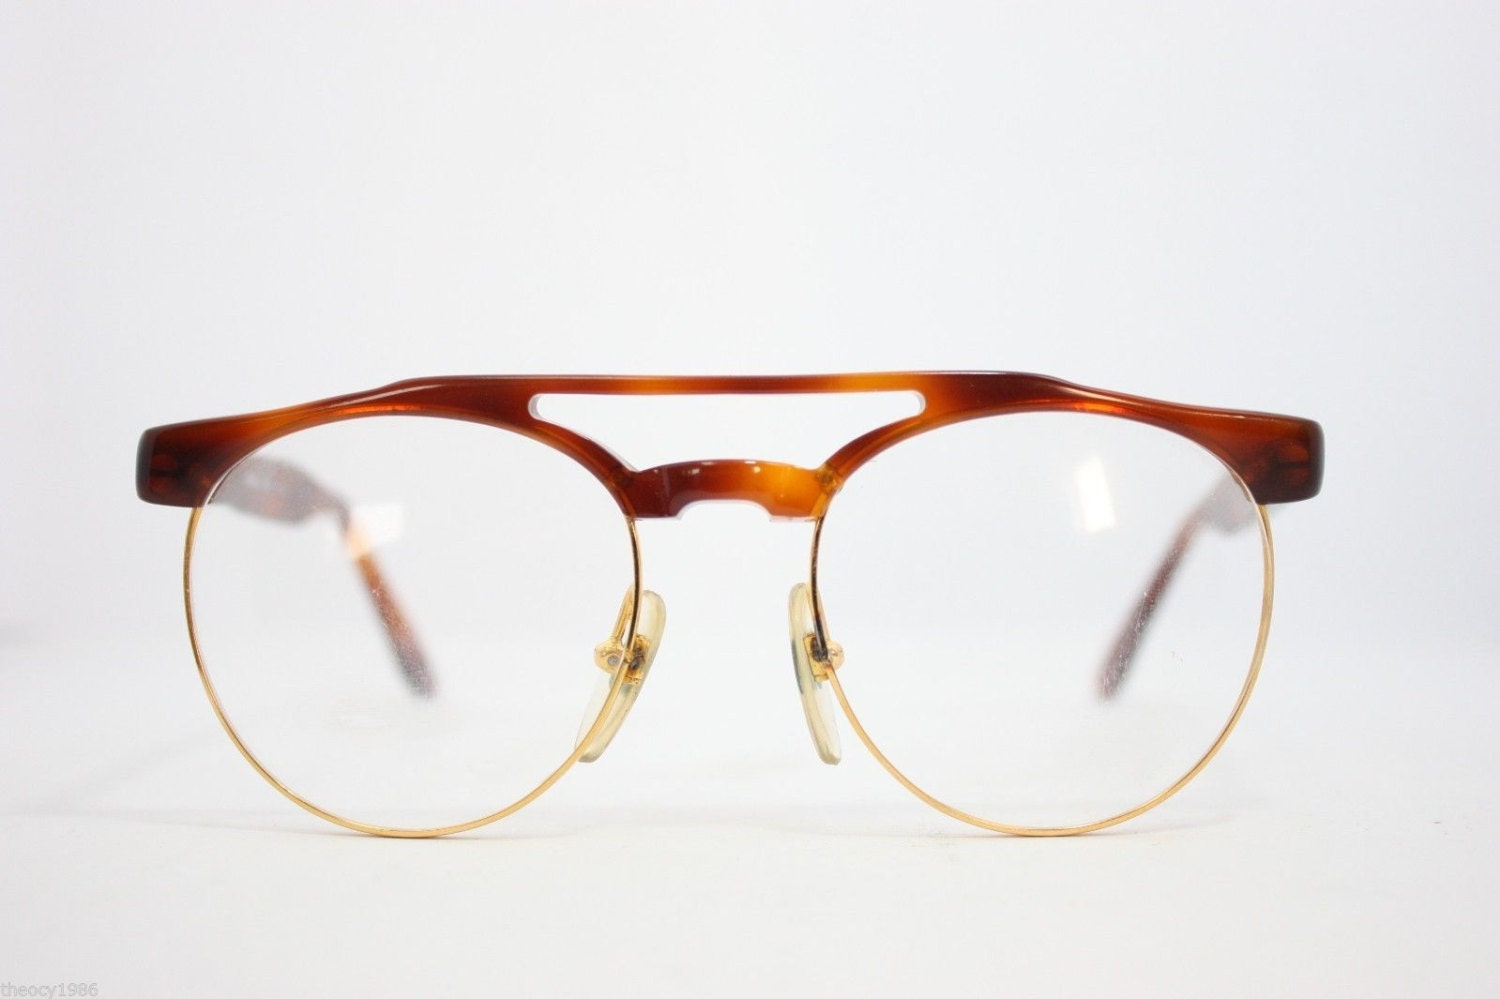 Maga Vintage Eyeglasses Eyewear Made in Italy Gold Havana 48mm